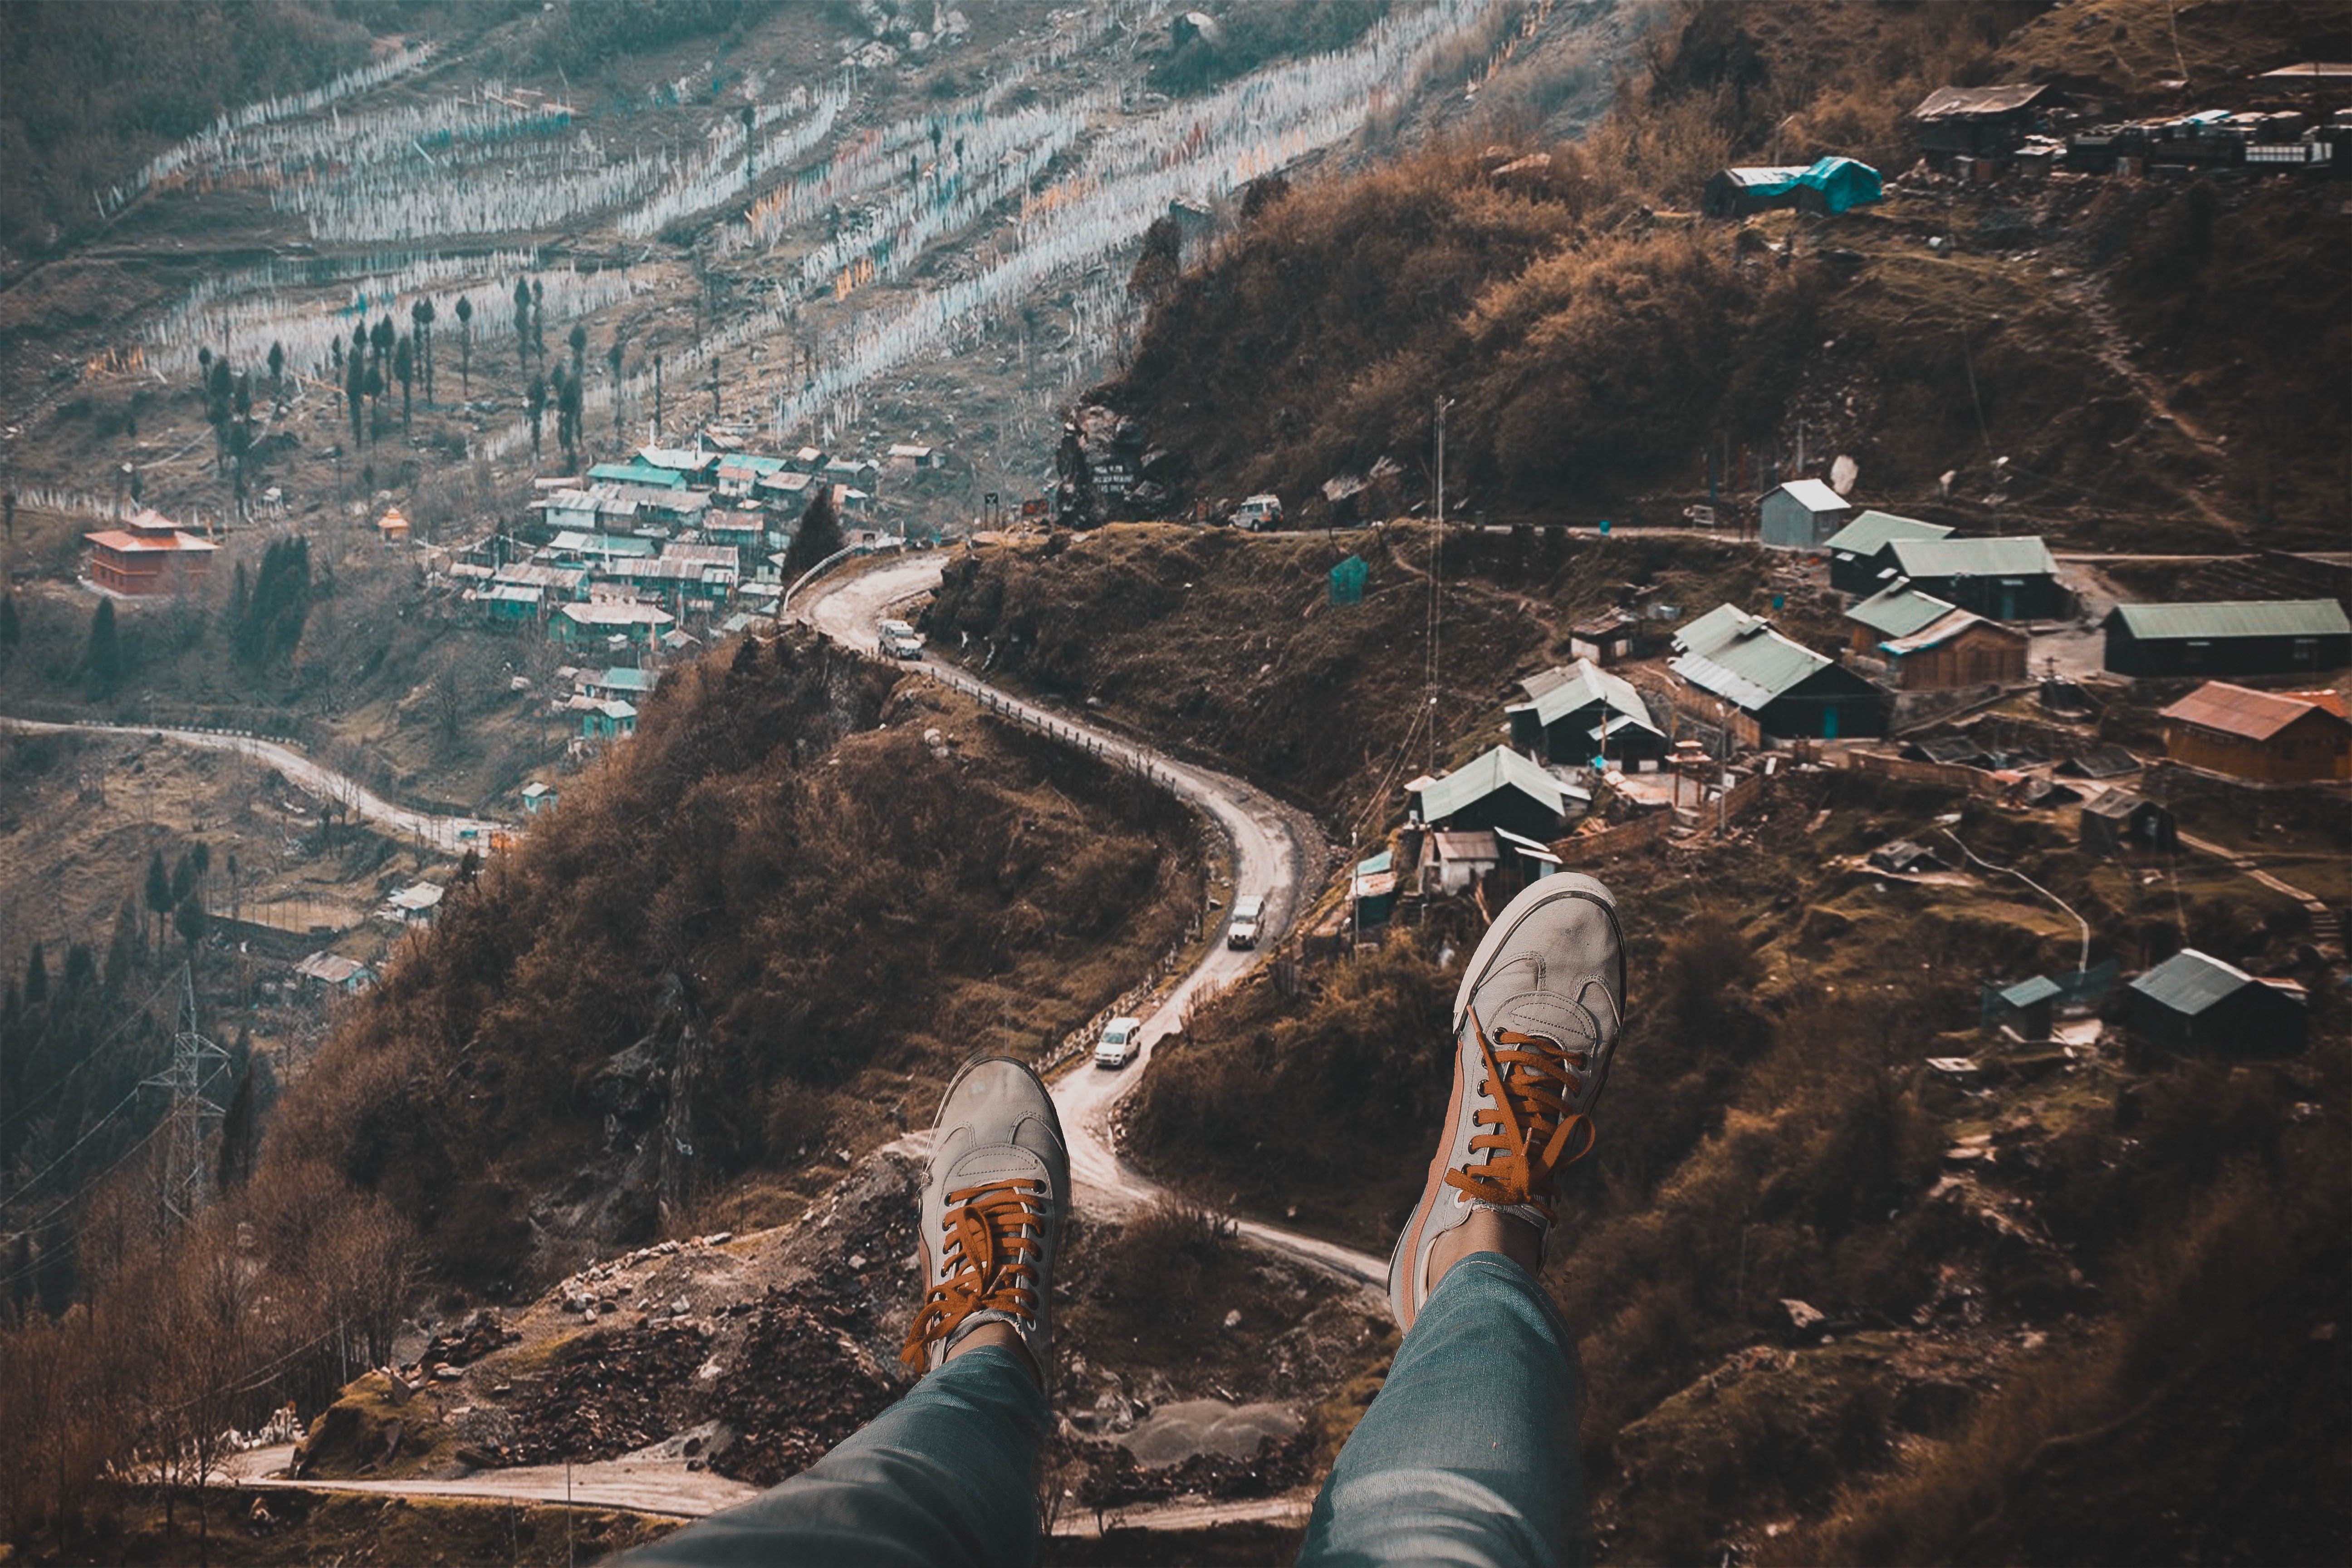 Person Wearing White Sneakers With Overlooking of Village on Hills